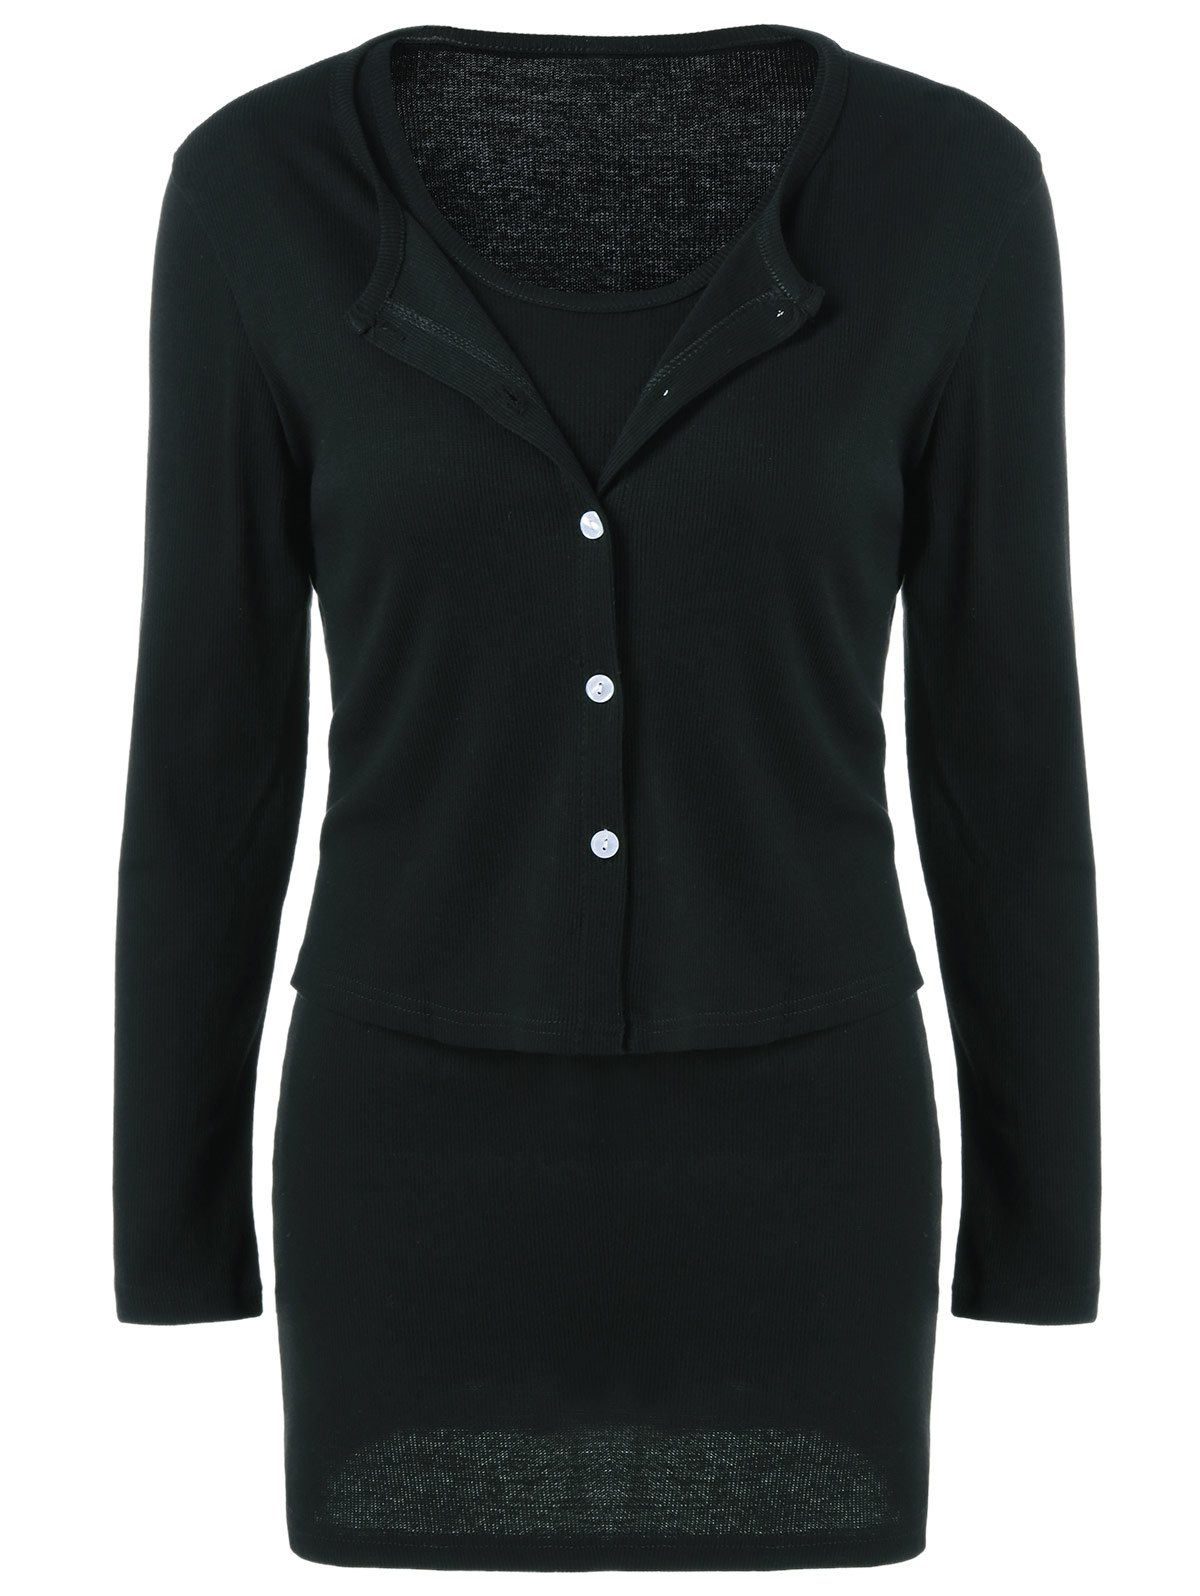 Sleeveless Skinny Dress + Buttoned Outerwear TwinsetWomen<br><br><br>Size: 5XL<br>Color: BLACK